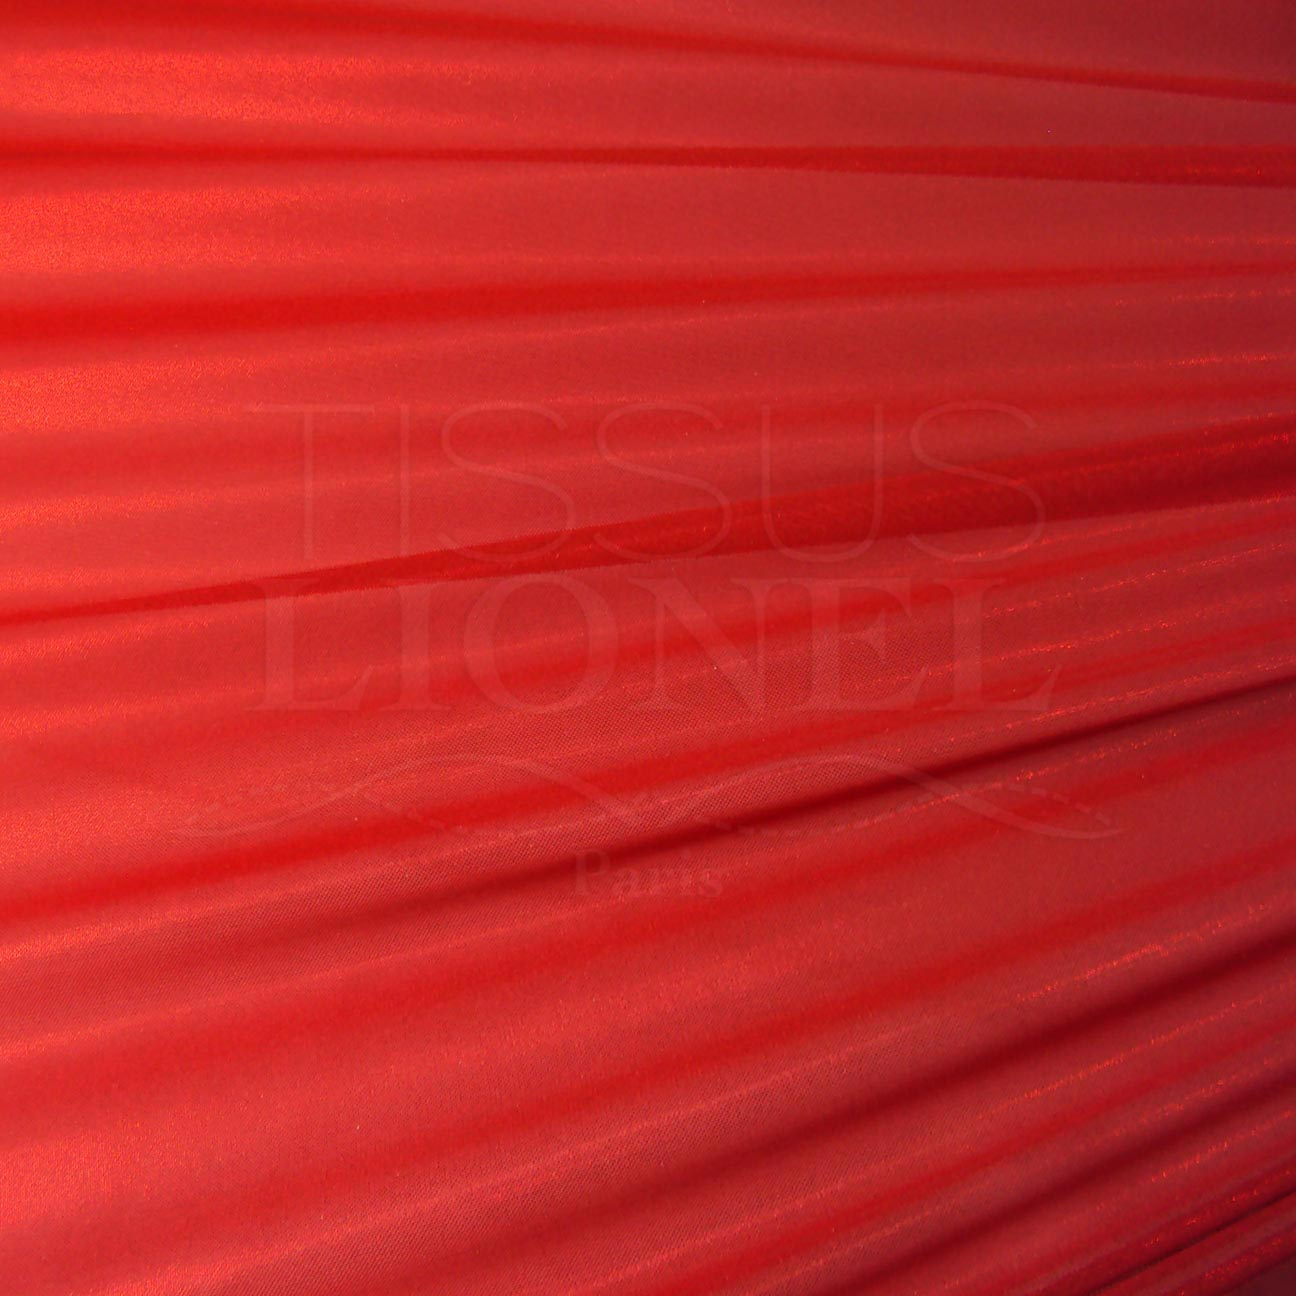 PAINTED MESH GLITTER RED BACKGROUND GLITTER RED 1296x1296